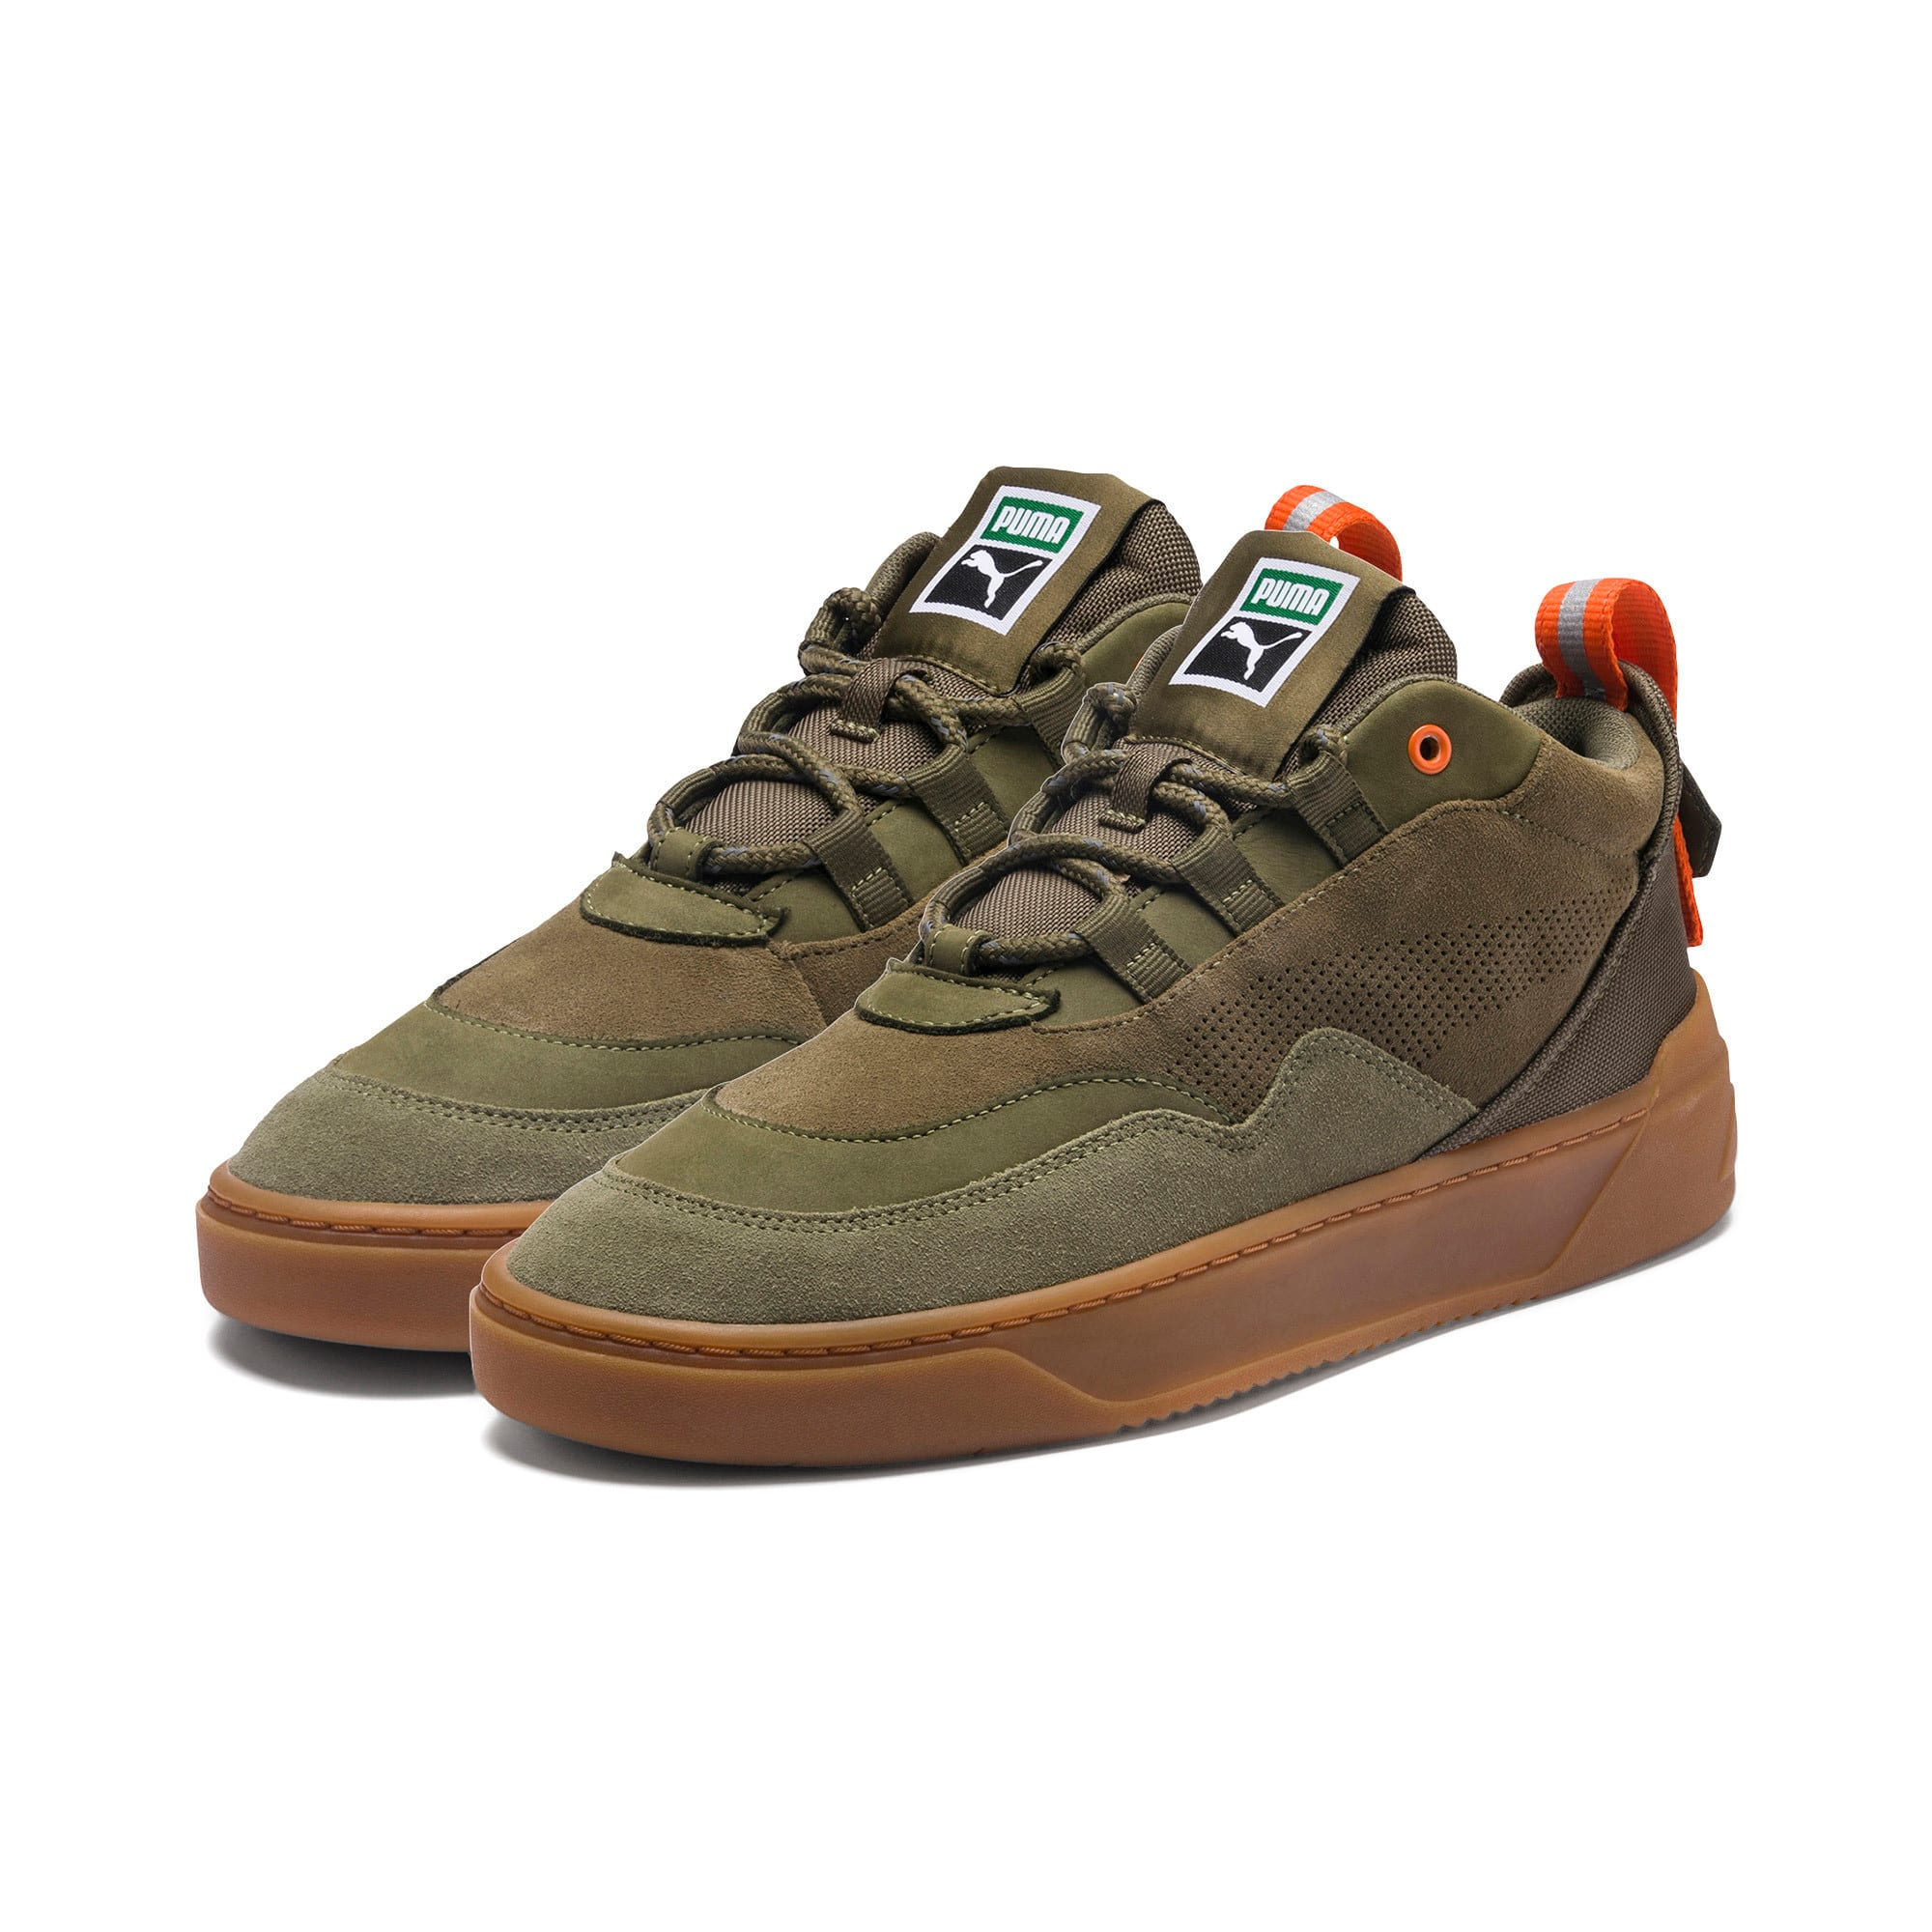 Thumbnail 2 of Cali Zero Demi Army Green Sneakers, Capulet Olive-Burnt Olive, medium